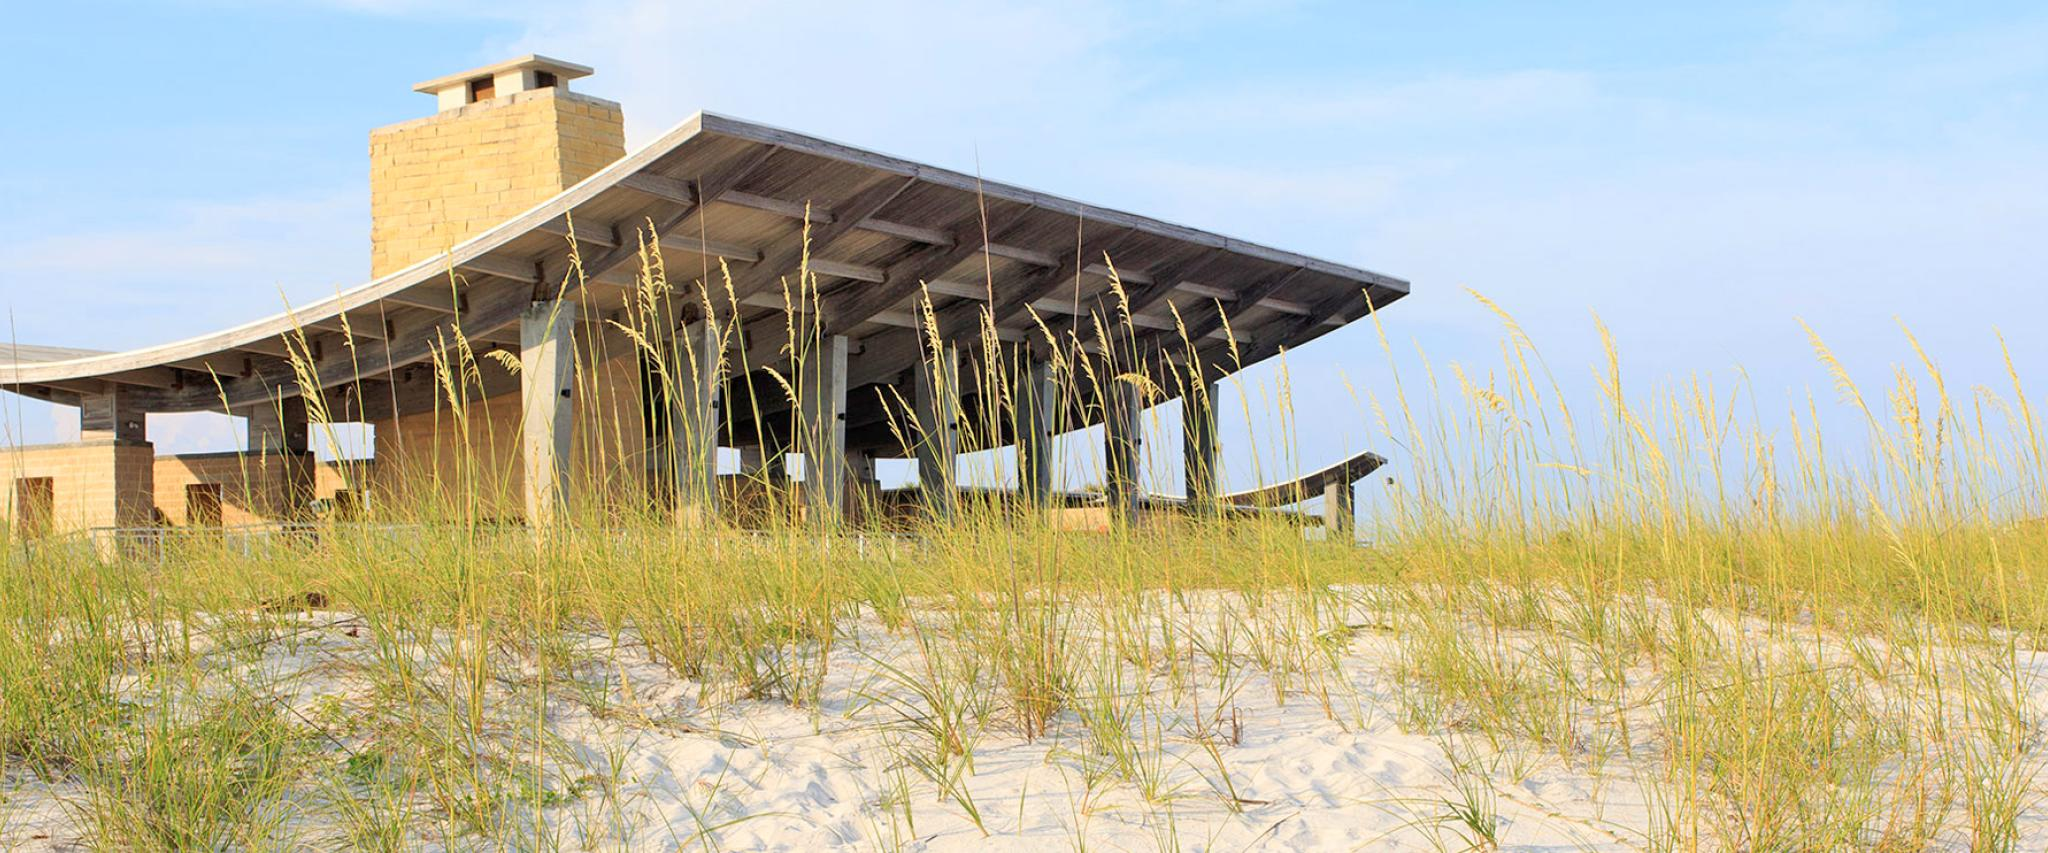 Pavilion at Gulf State Park in Gulf Shores AL